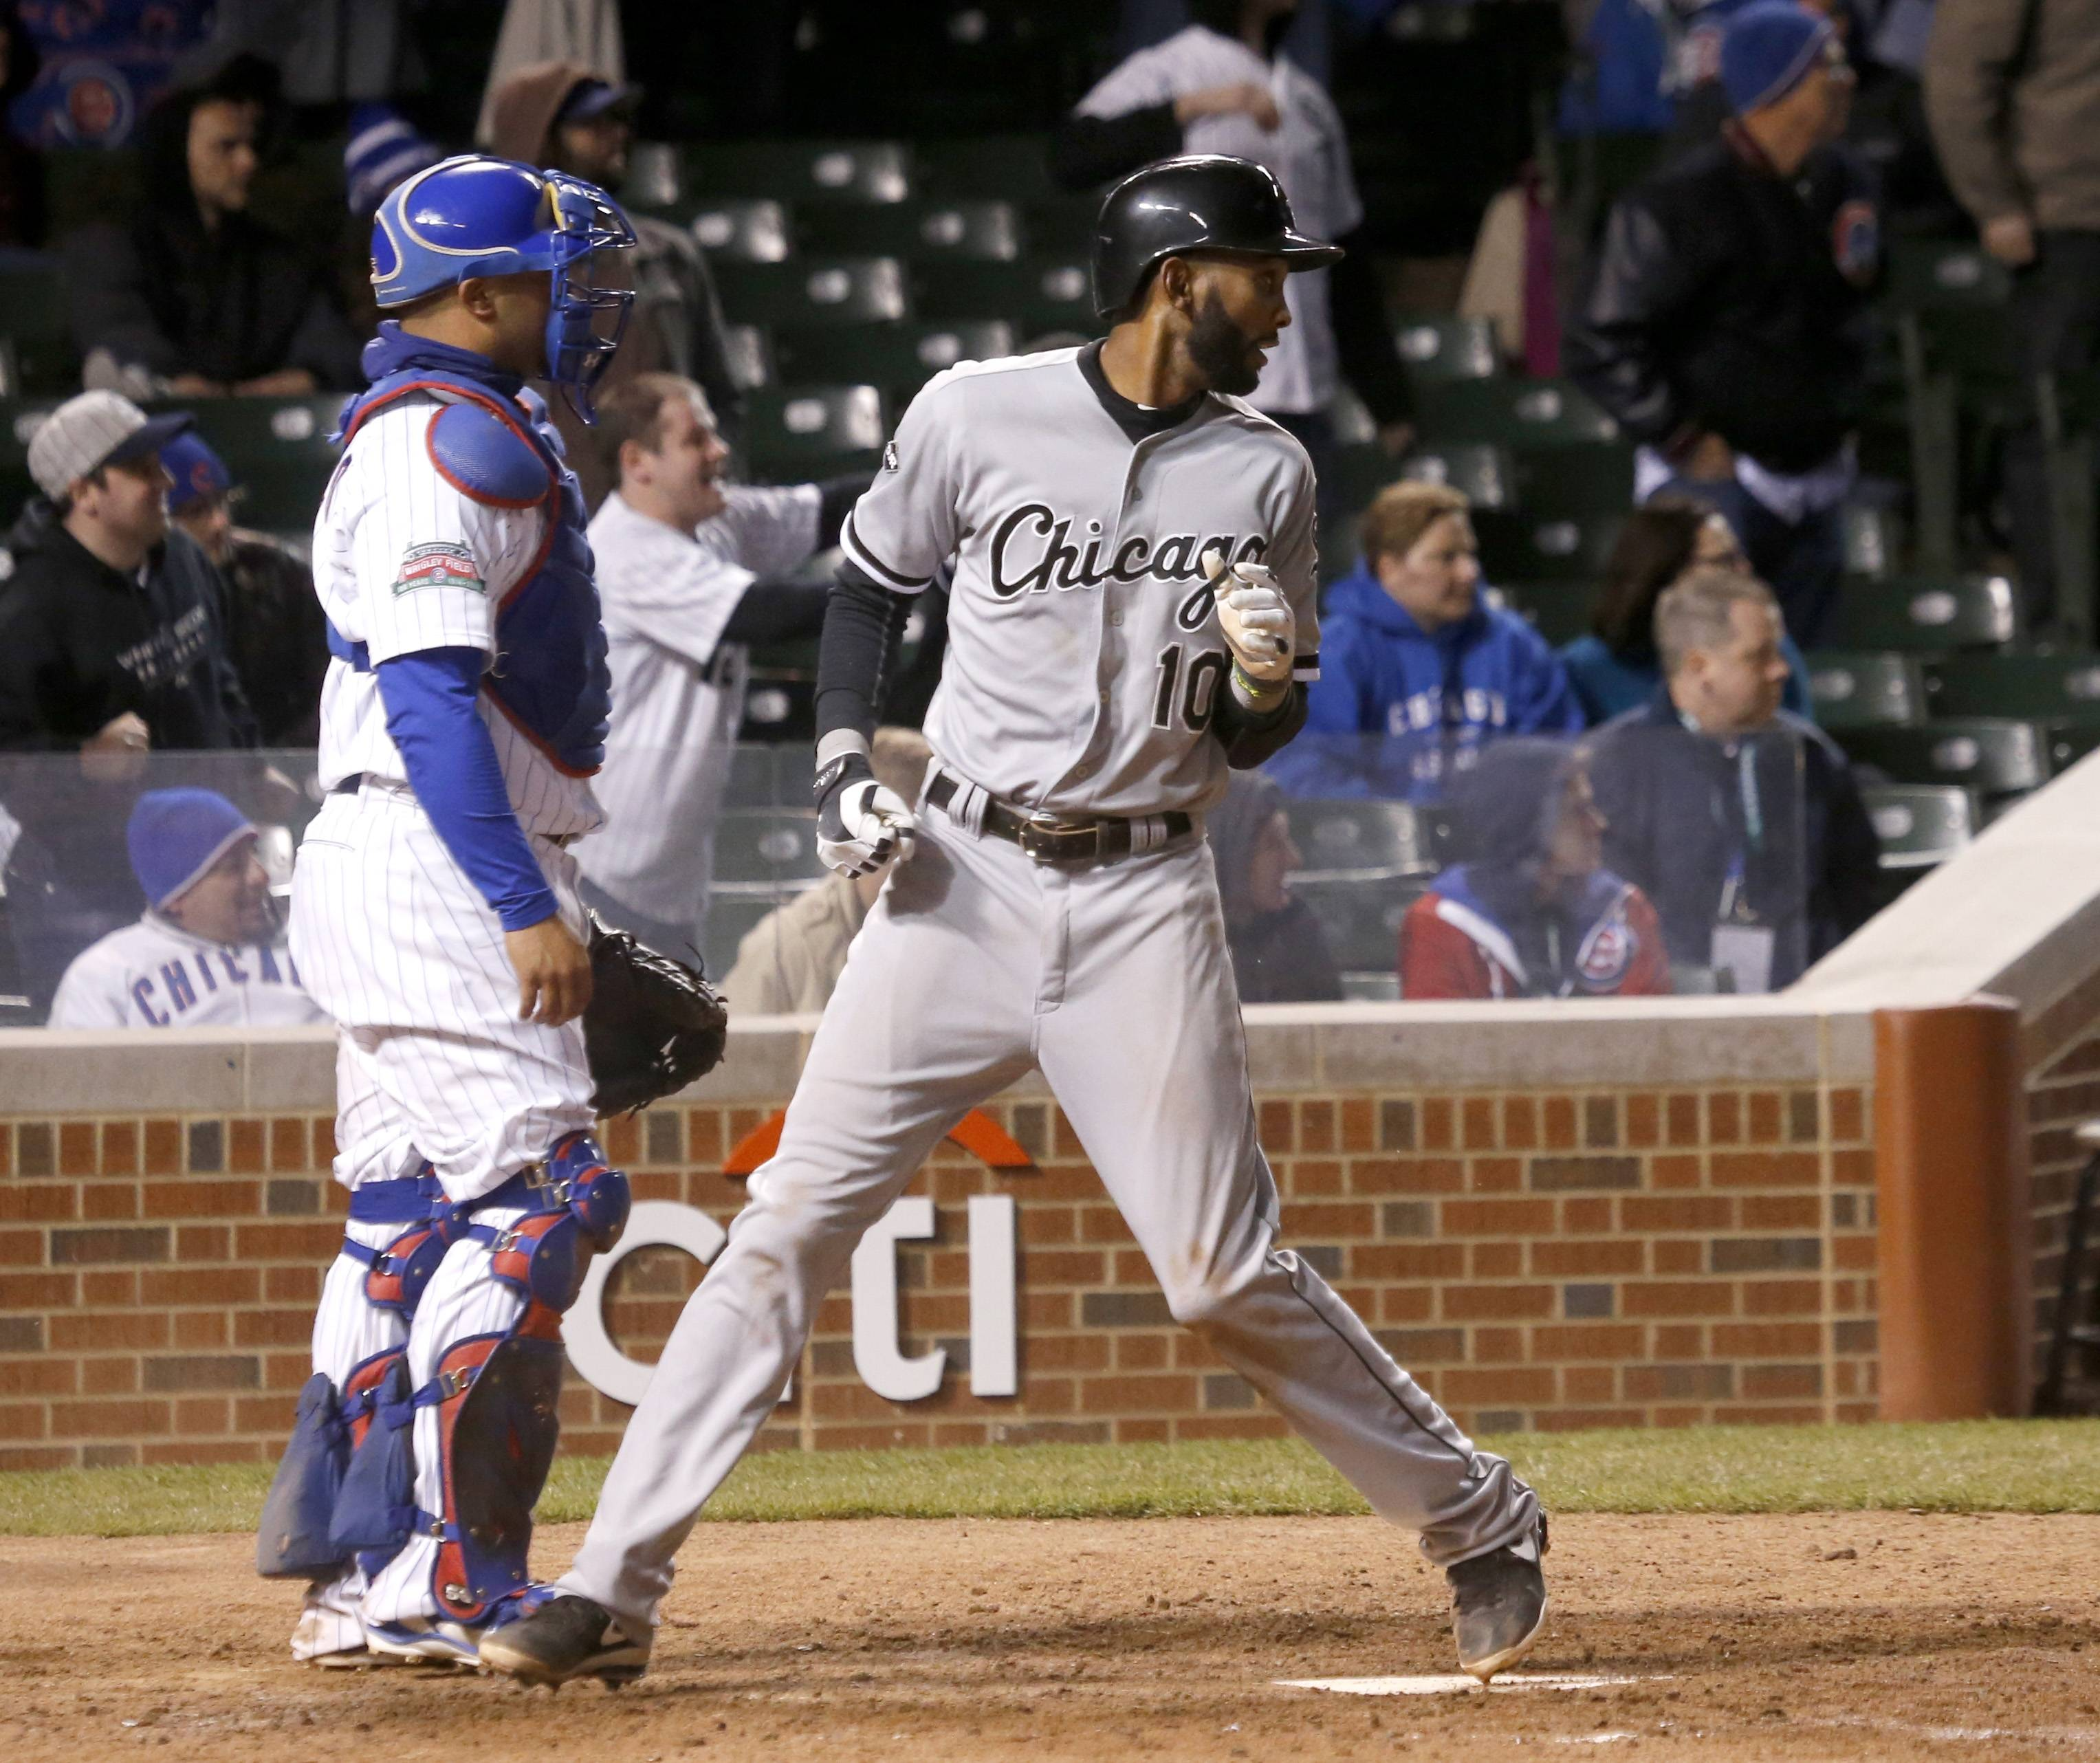 Alexei Ramirez, right, of the White Sox looks back to the infield after scoring on a double by Marcus Semien during Monday's 12th inning at Wrigley Field.